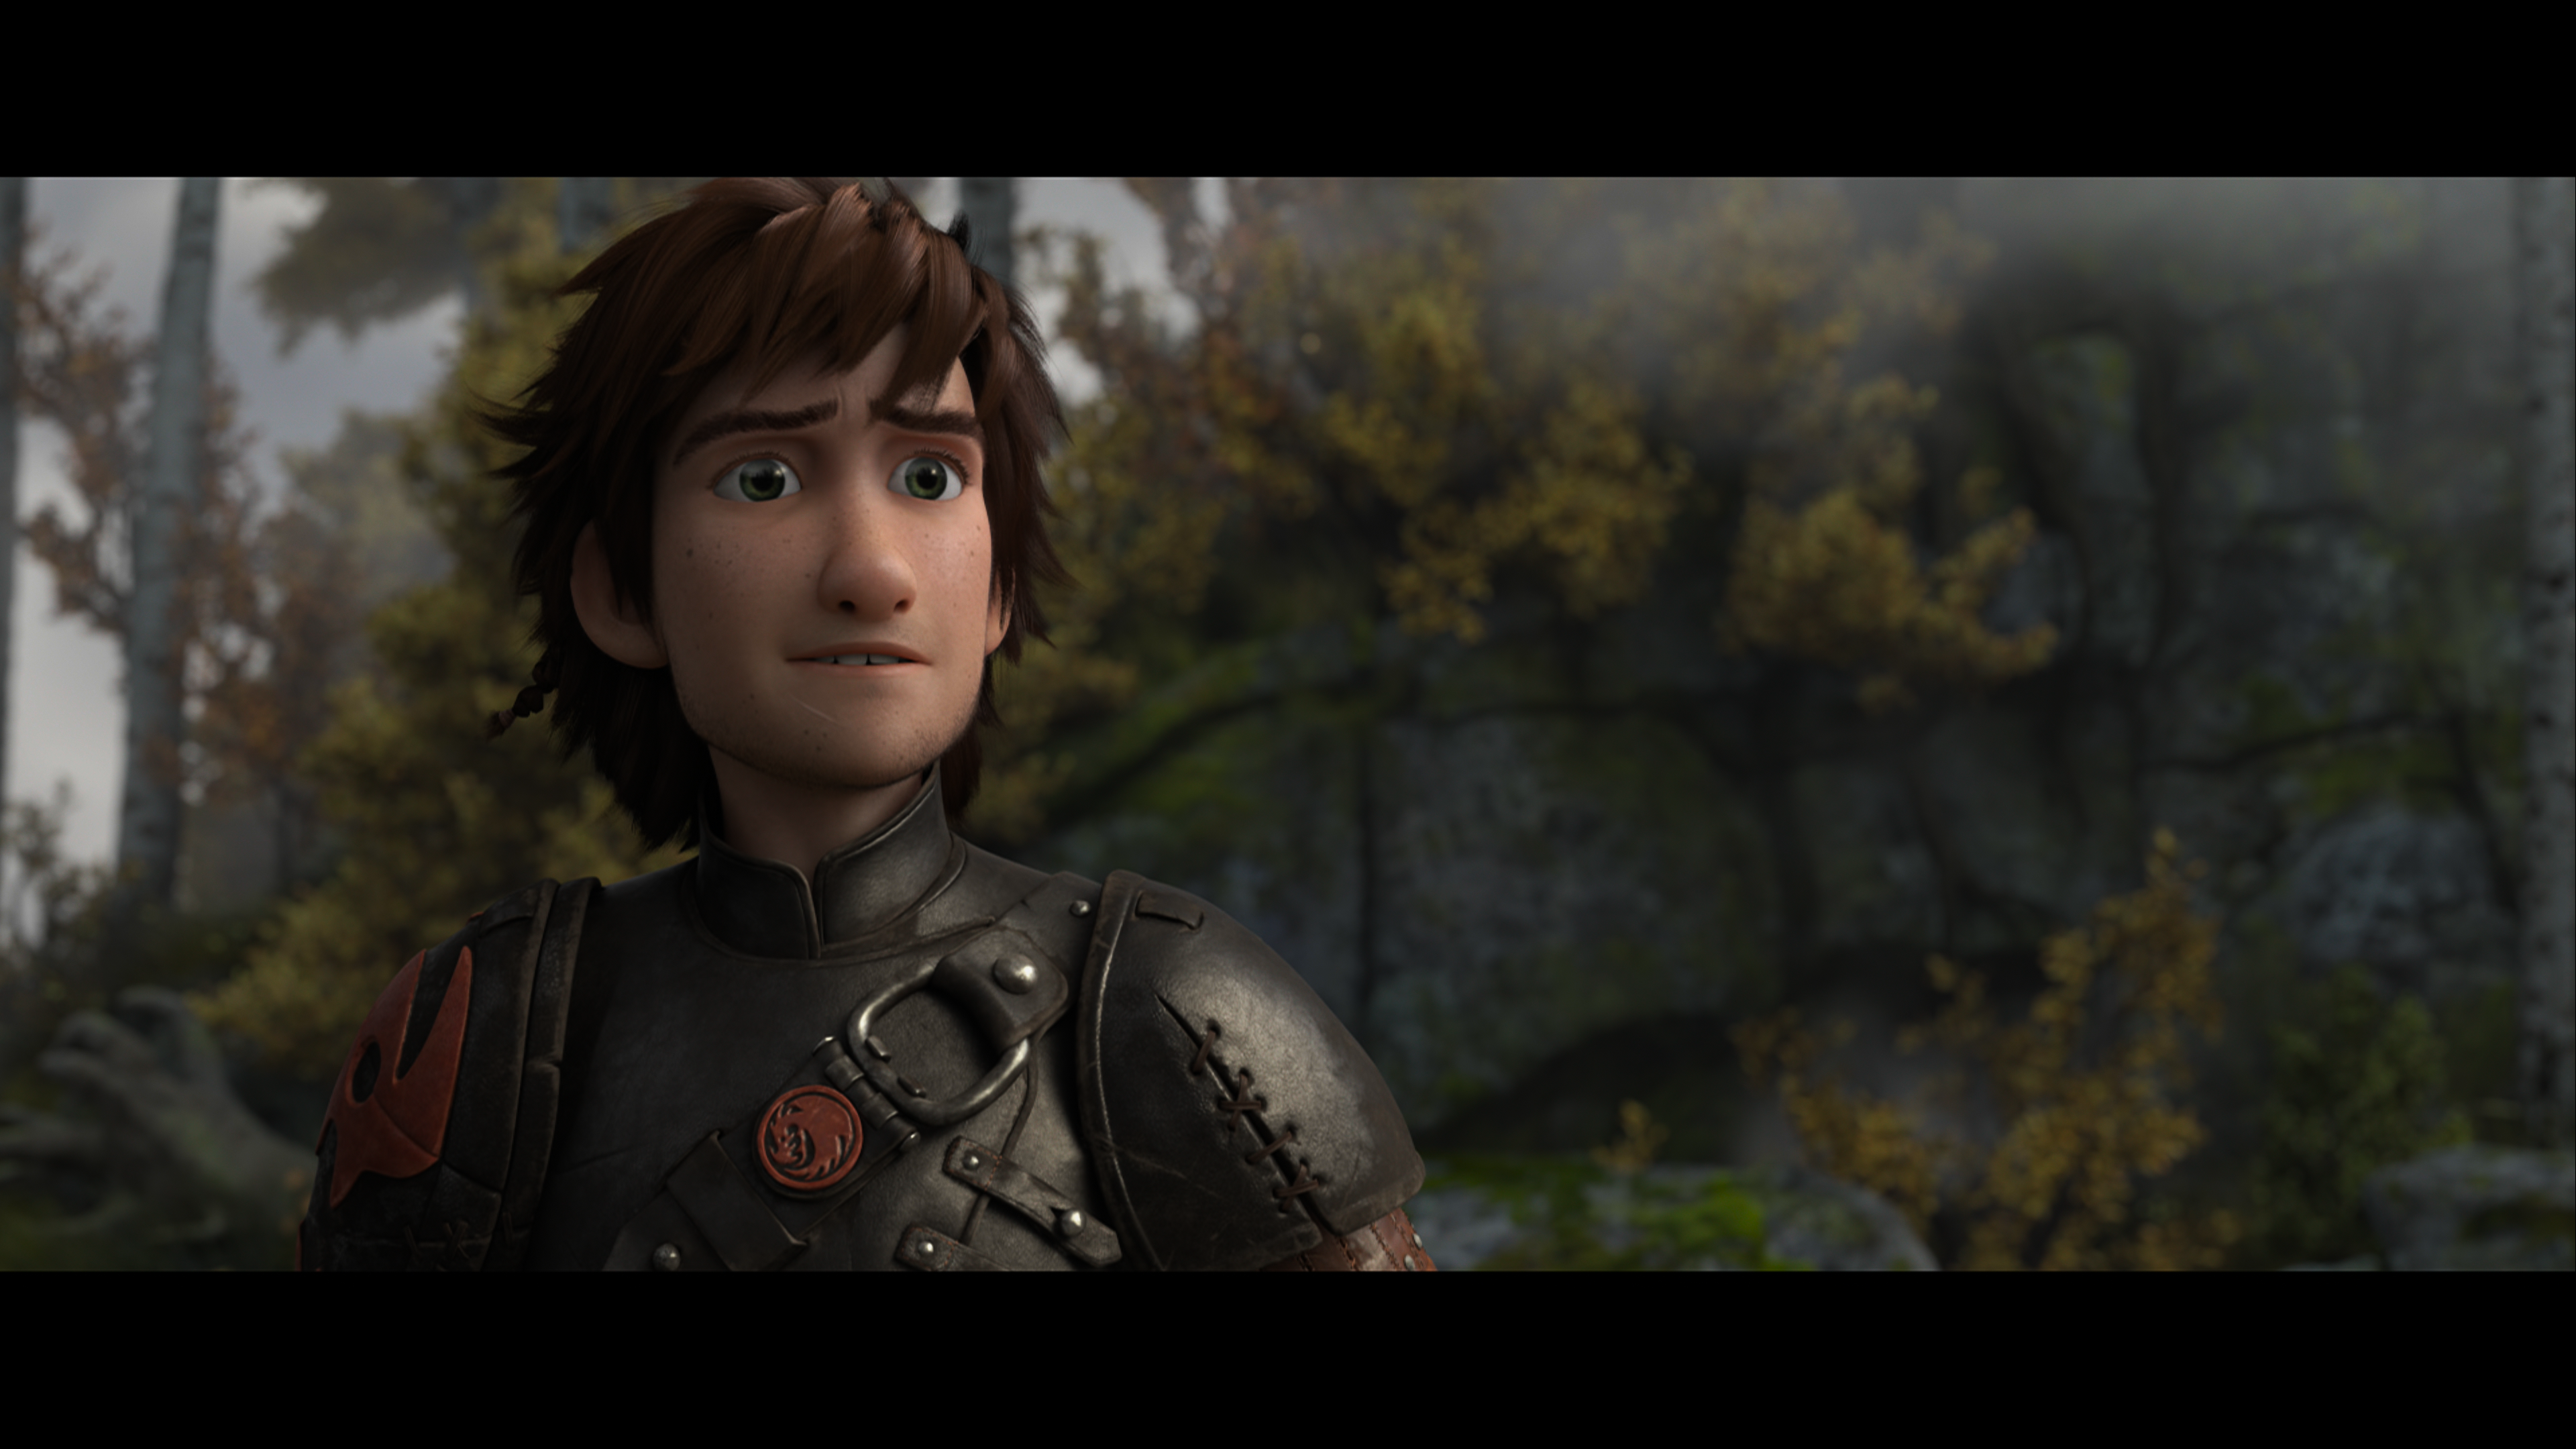 How To Train Your Dragon 2 4k Uhd Blu Ray Screenshots Highdefdiscnews